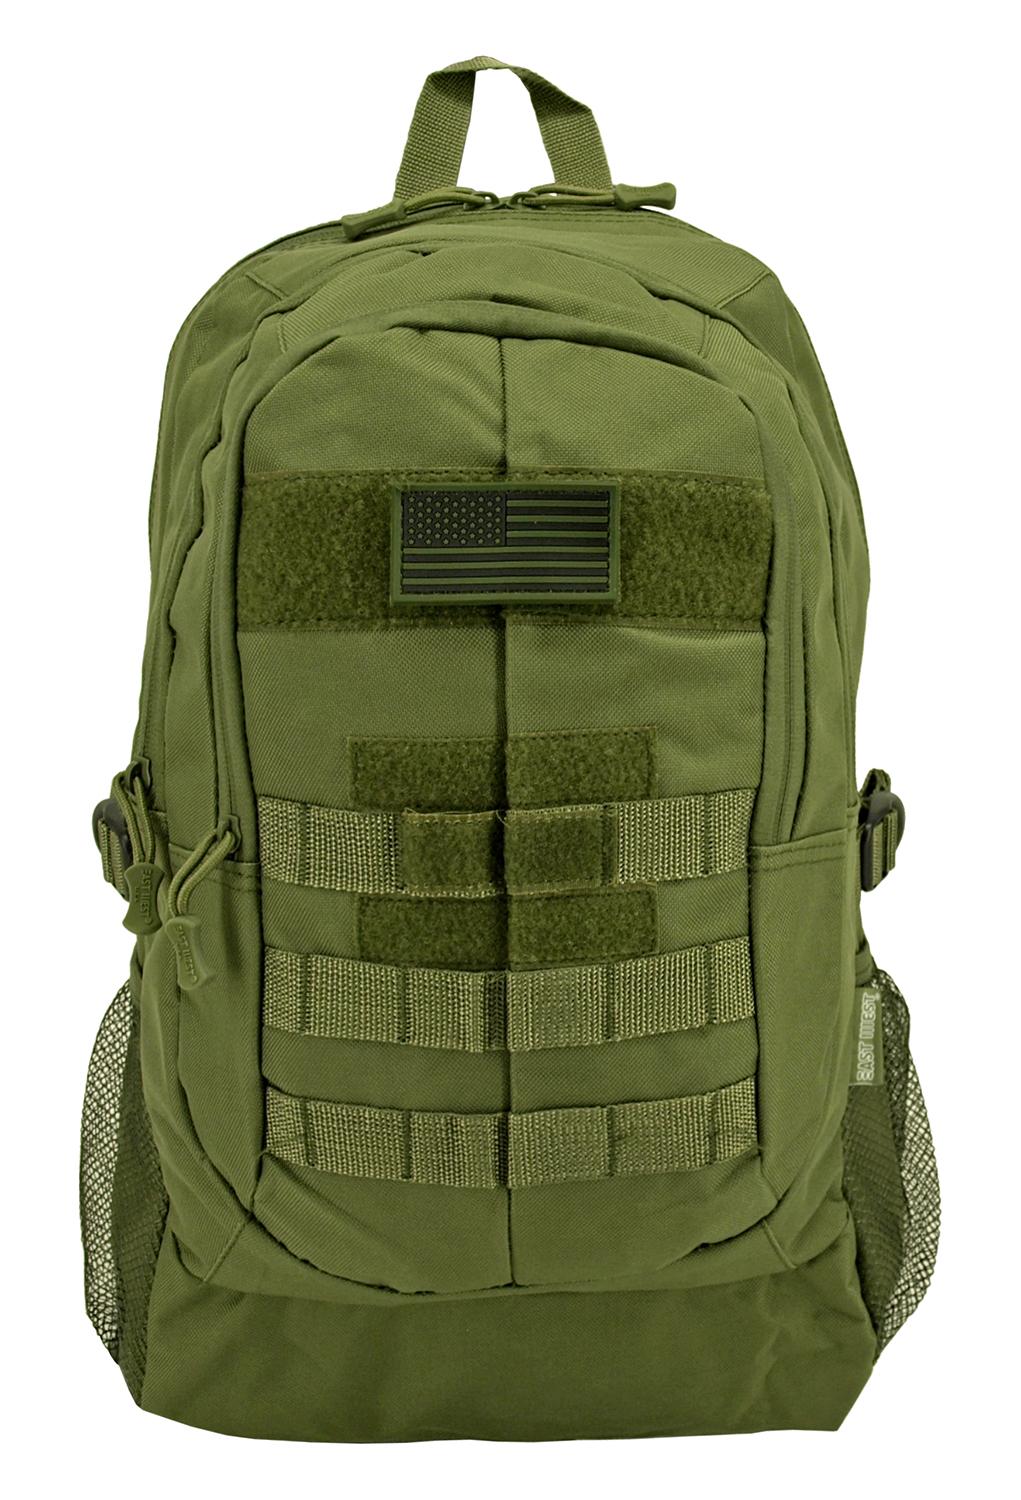 Tactical All-Terrain Backpack - Olive Green